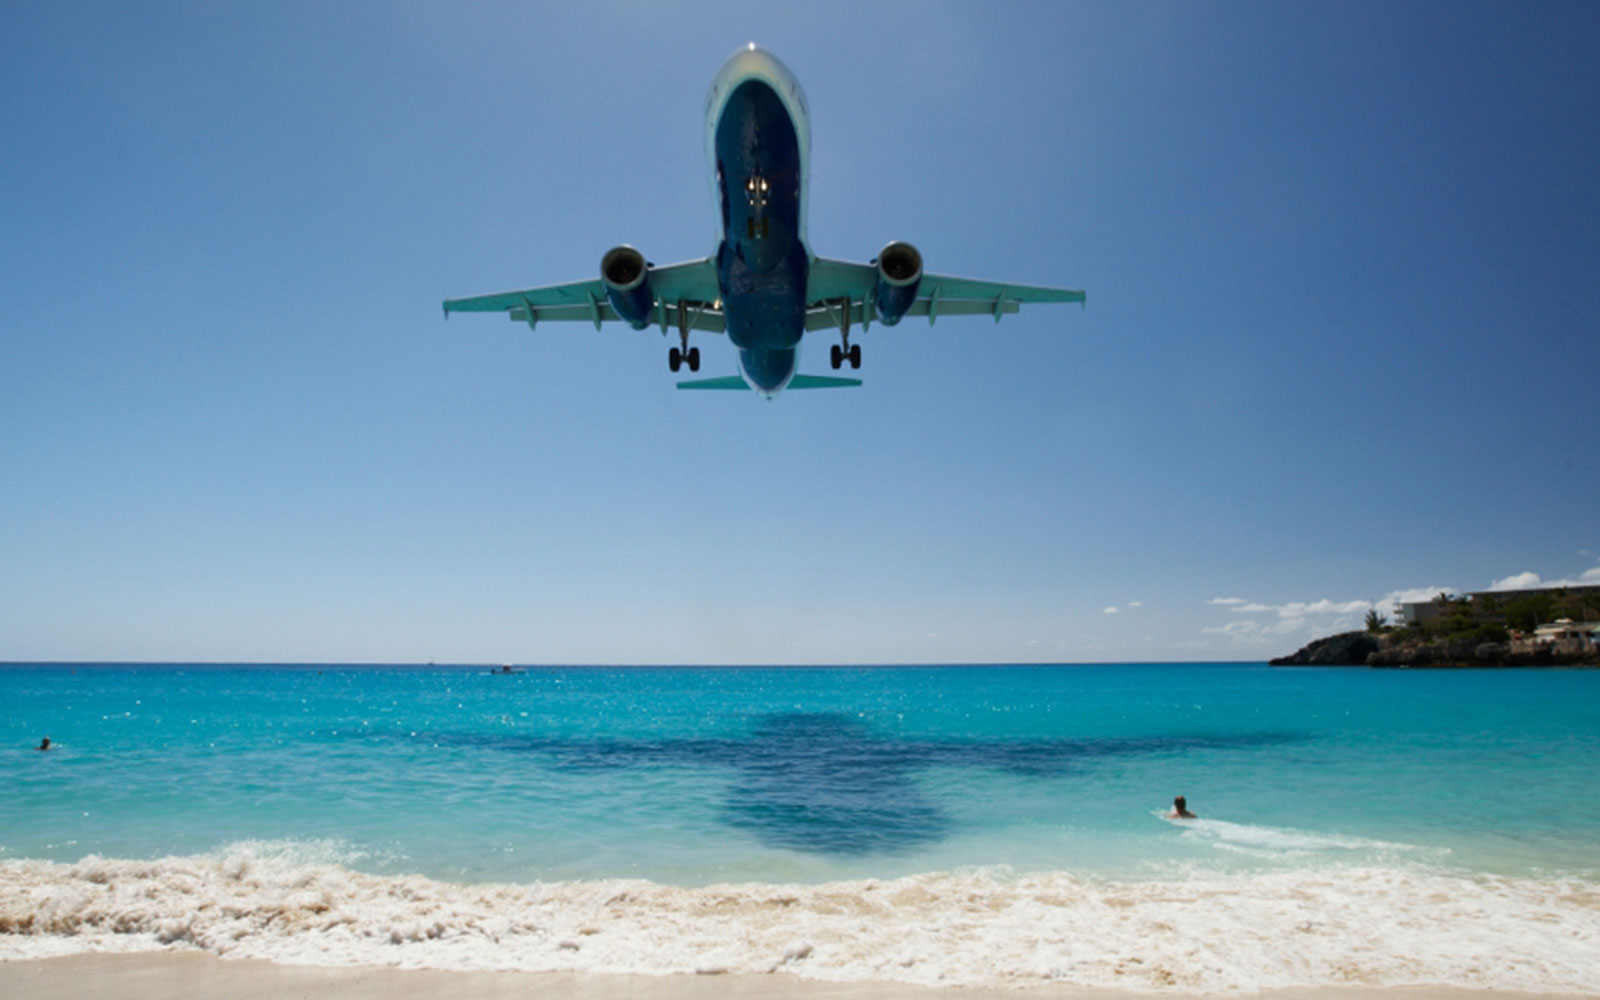 5. Princess Juliana International Airport in Saint Martin